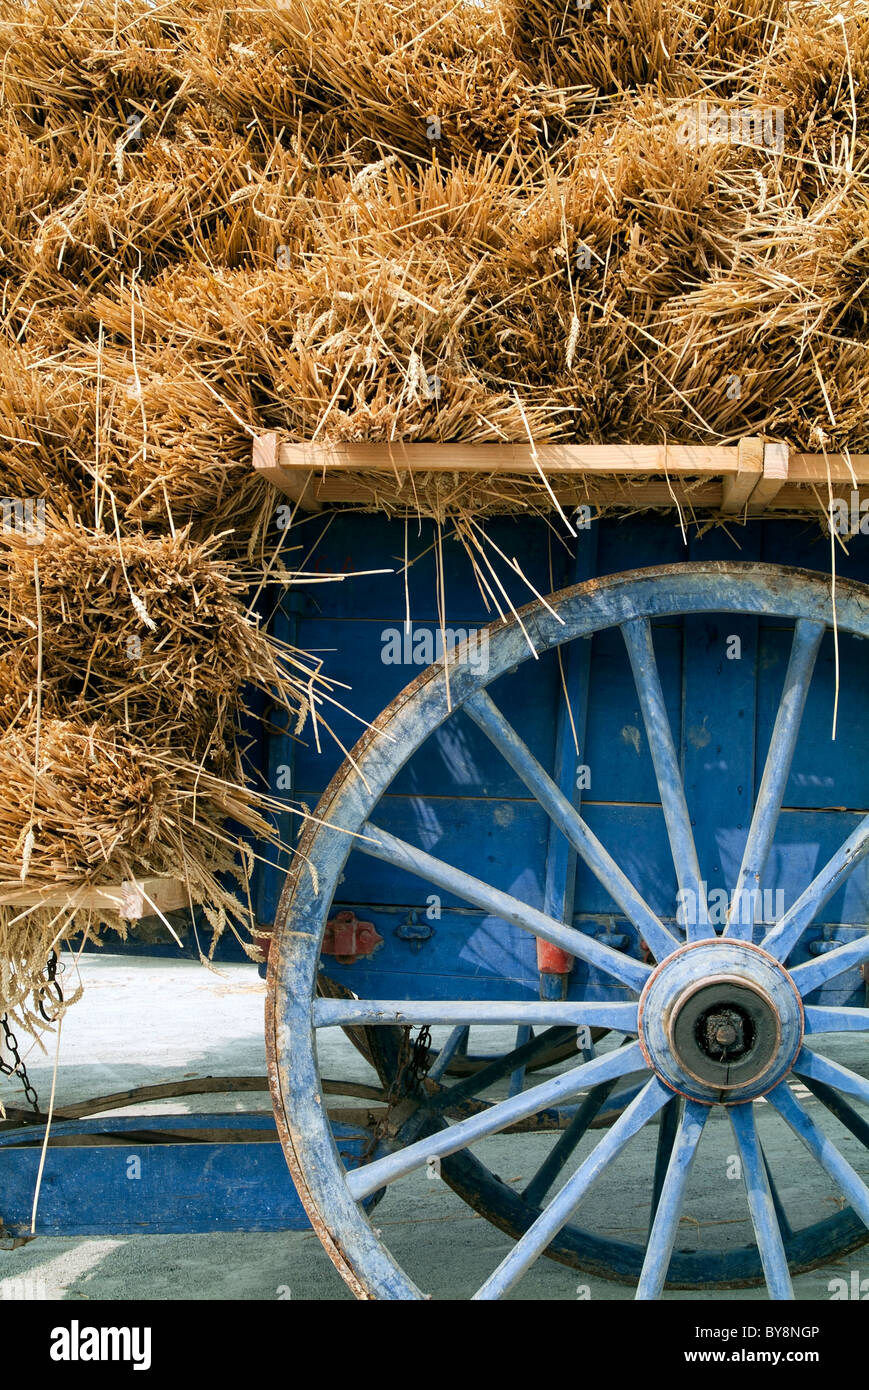 Blue farm cart carrying a full load of straw / hay - Stock Image